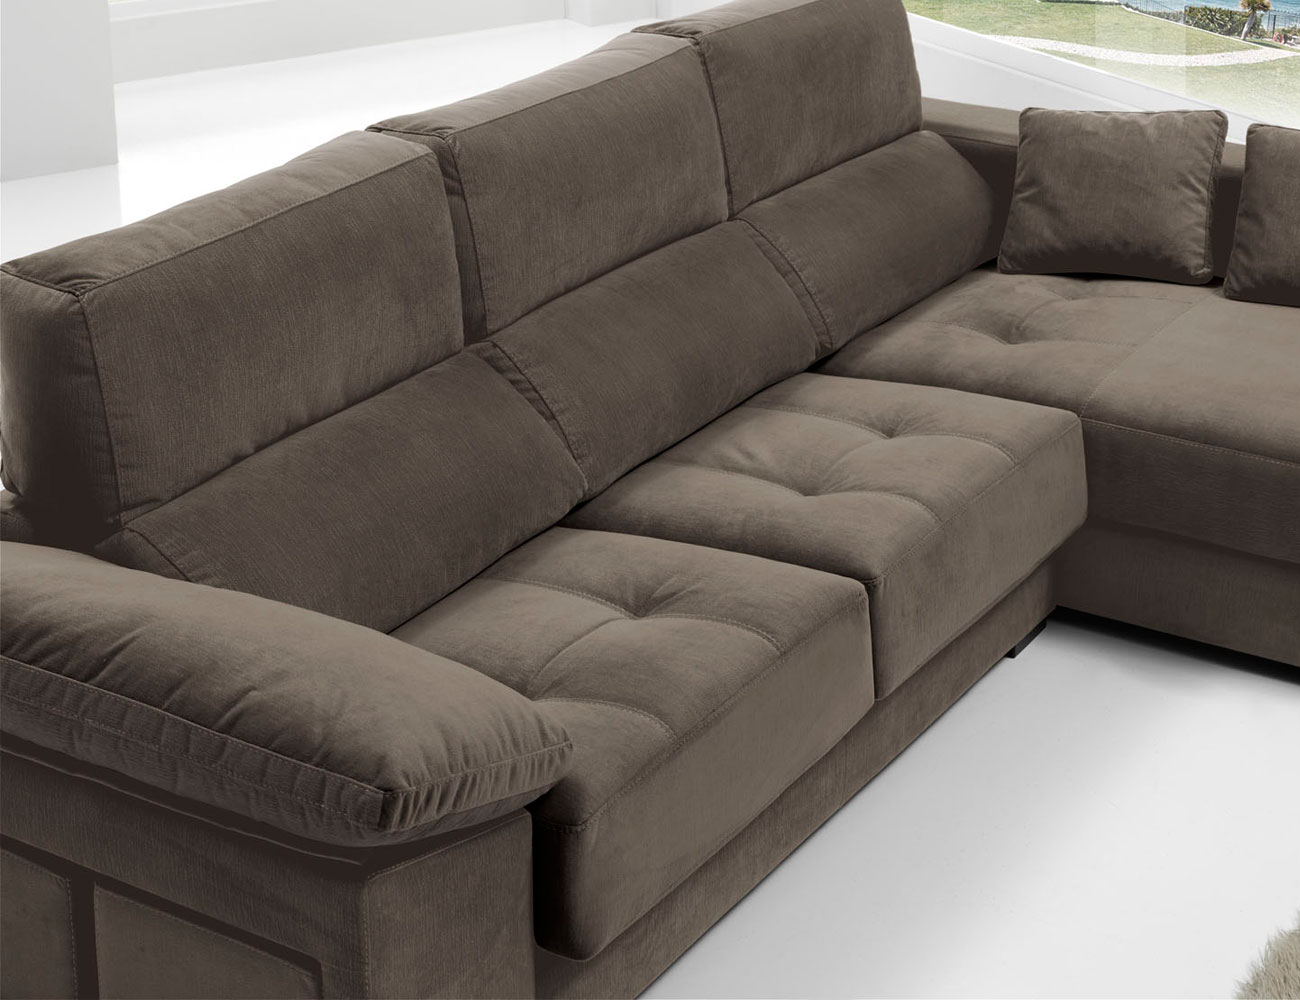 Sofa chaiselongue anti manchas bering pouf 229